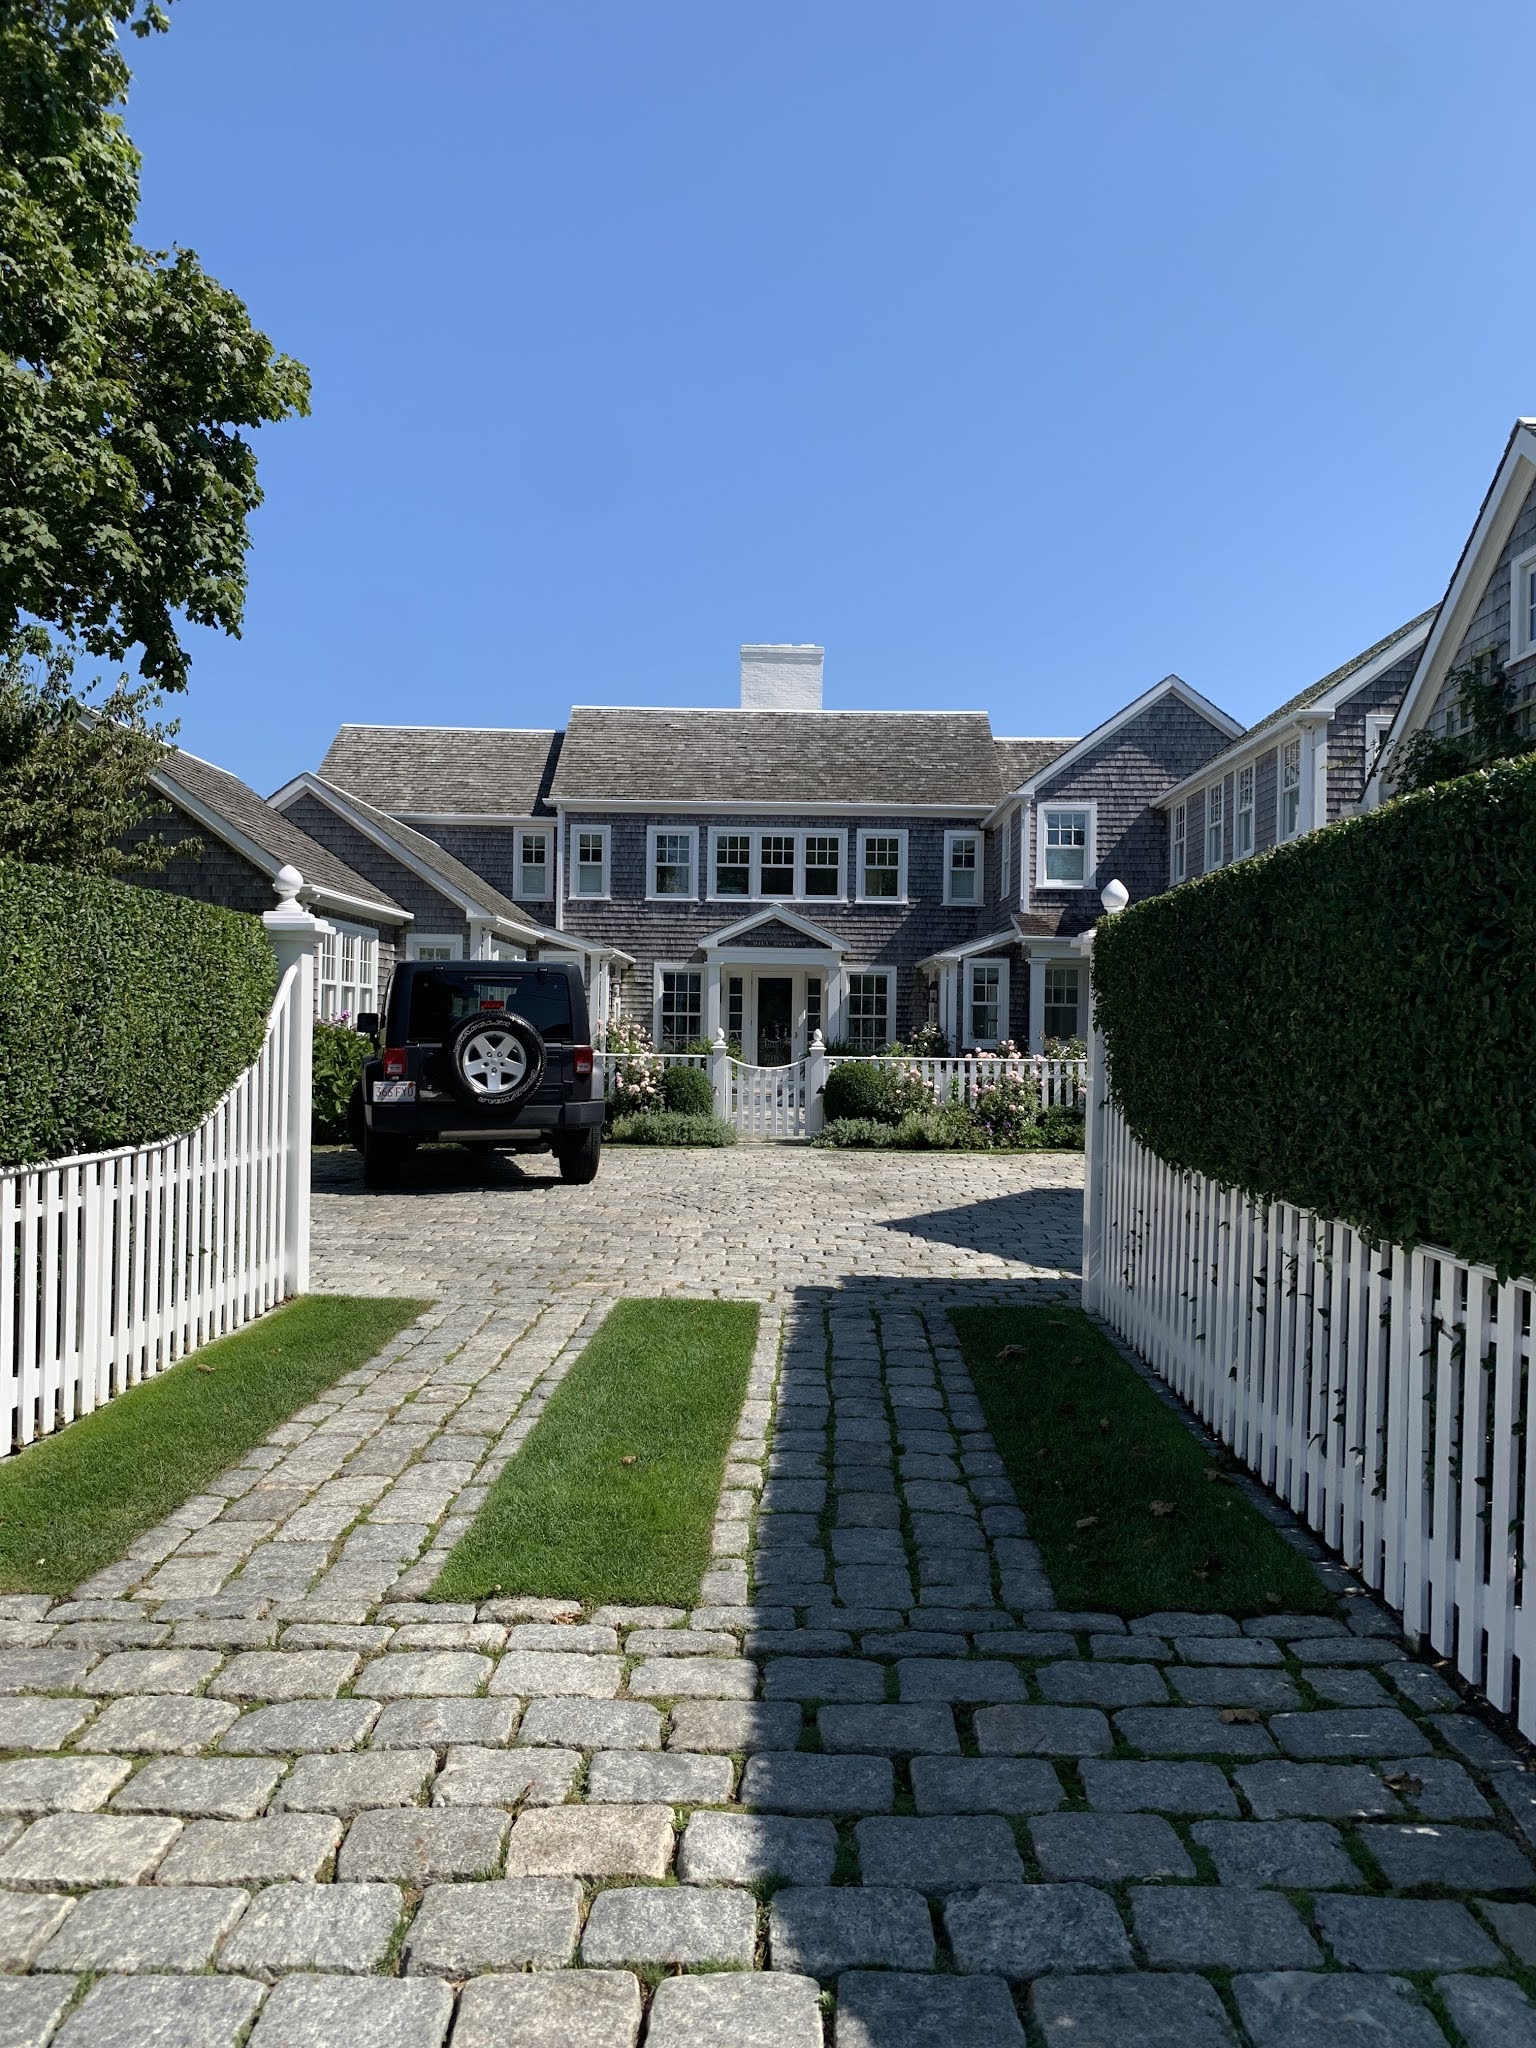 Our September Trip to Nantucket